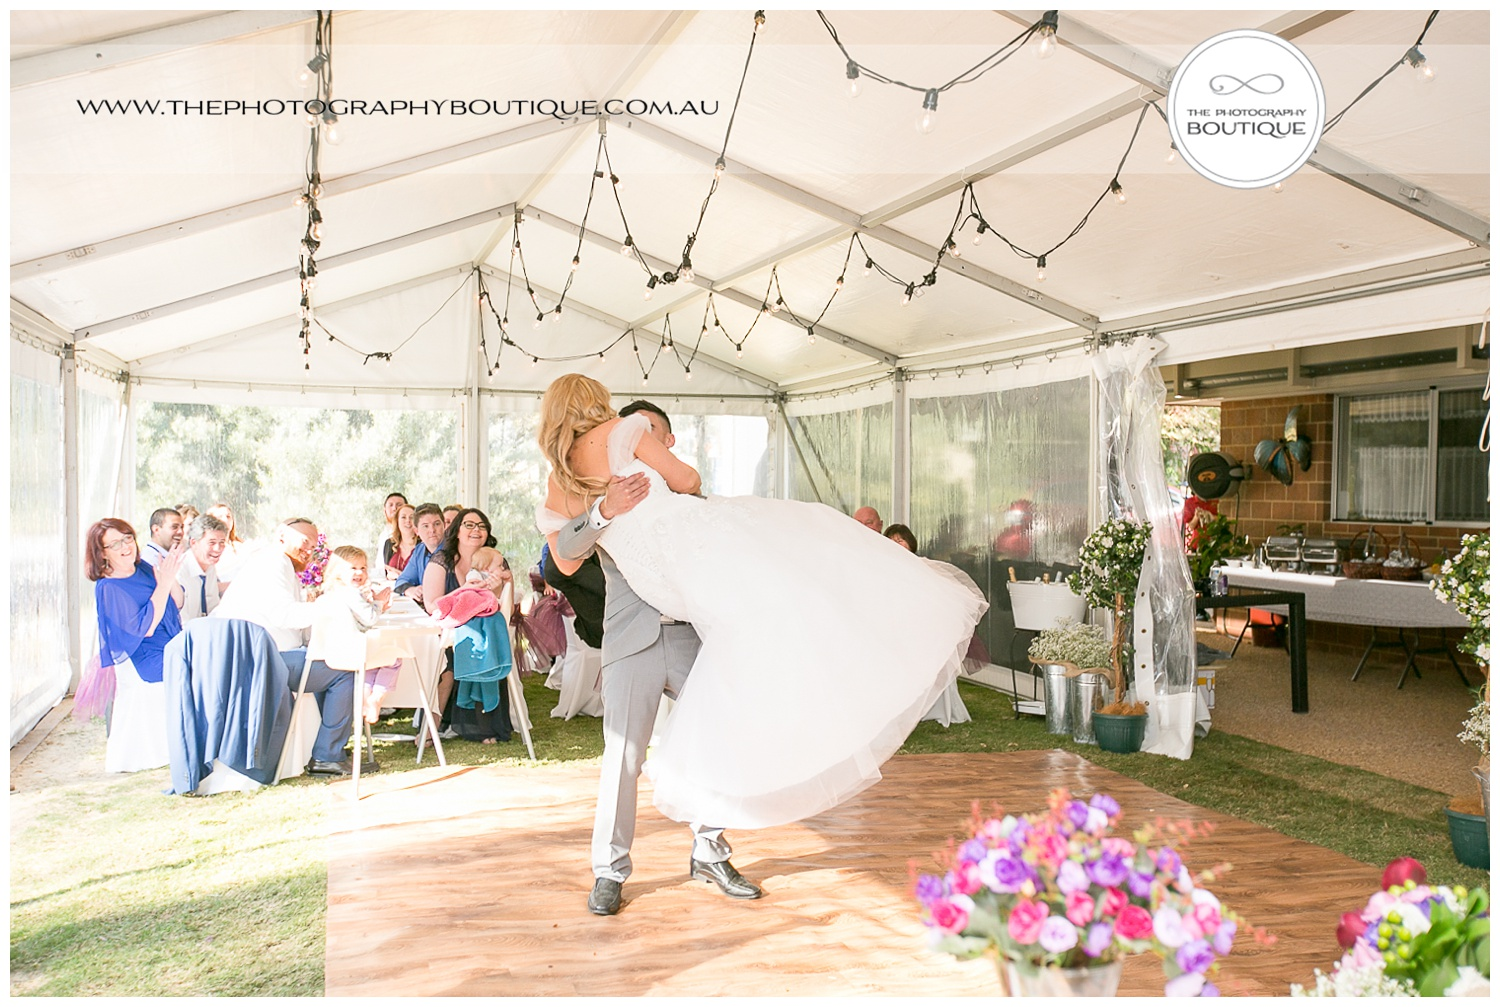 Groom lifting bride in first dance at Roelands Bunbury wedding